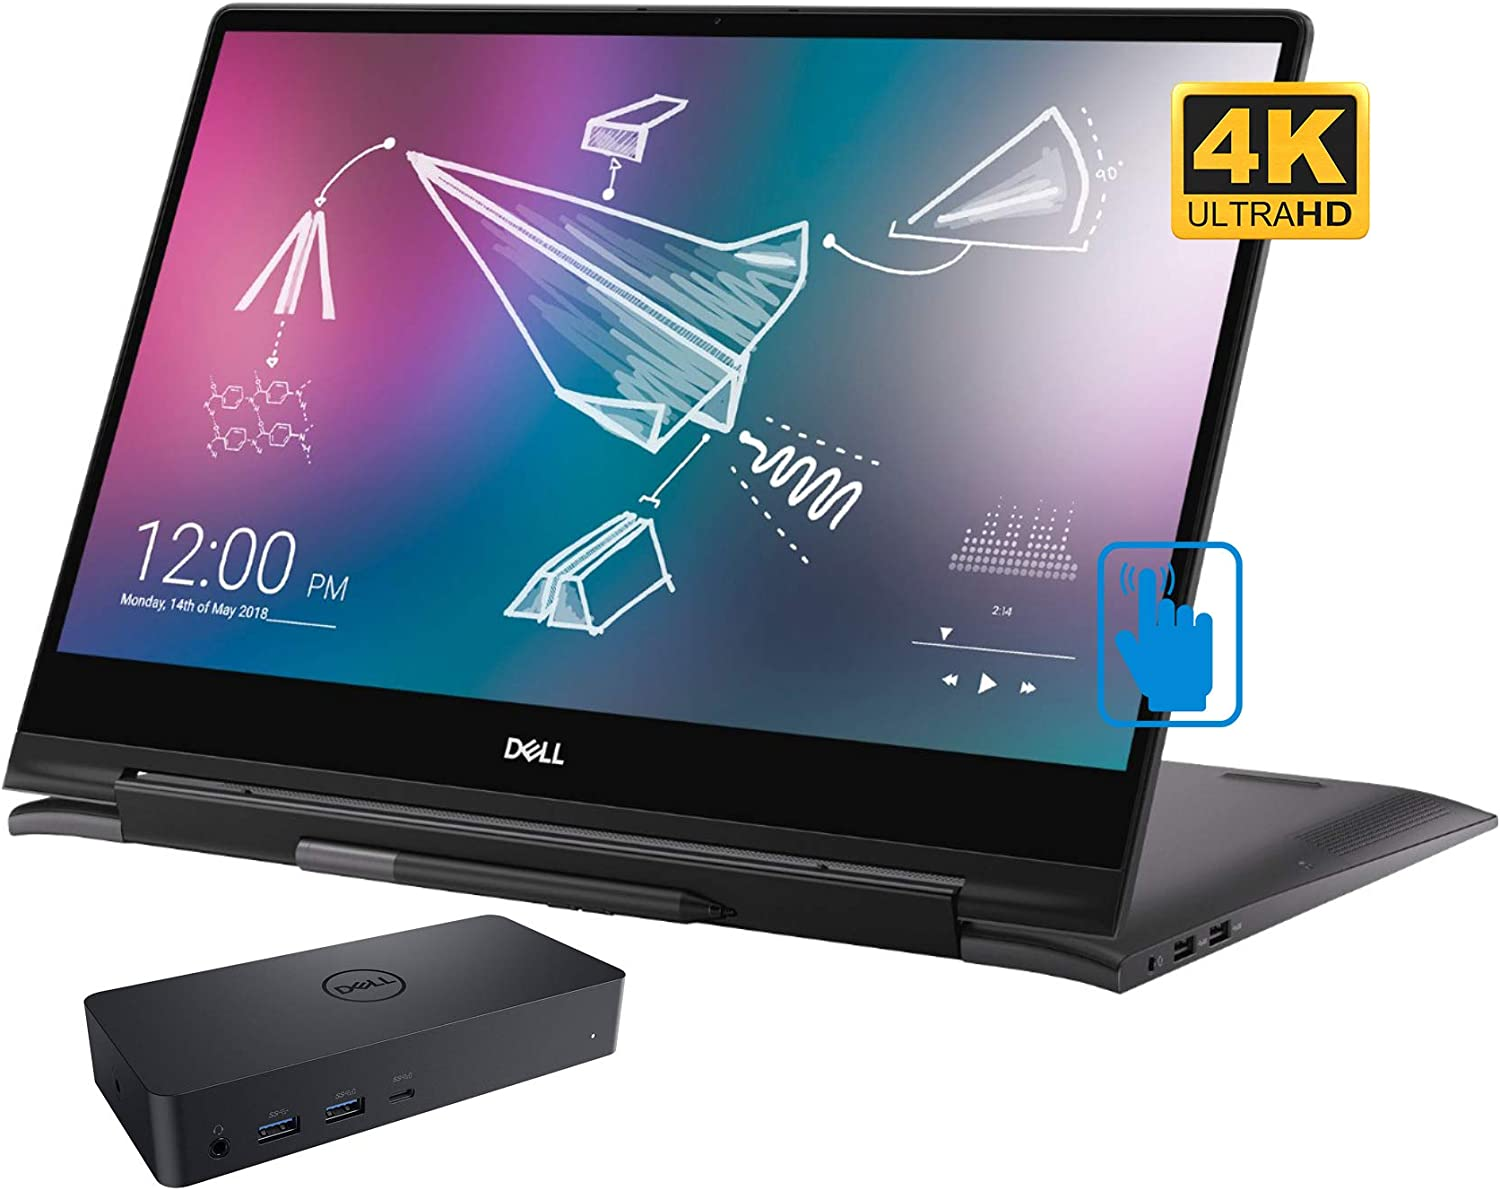 """Dell Inspiron 15 7591 Home and Business Laptop-2-in-1 (Intel i7-10510U 4-Core, 16GB RAM, 1TB PCIe SSD, NVIDIA MX250, 15.6"""" Touch 4K UHD (3840x2160), Active Pen, Win 10 Home) with D6000 Dock"""